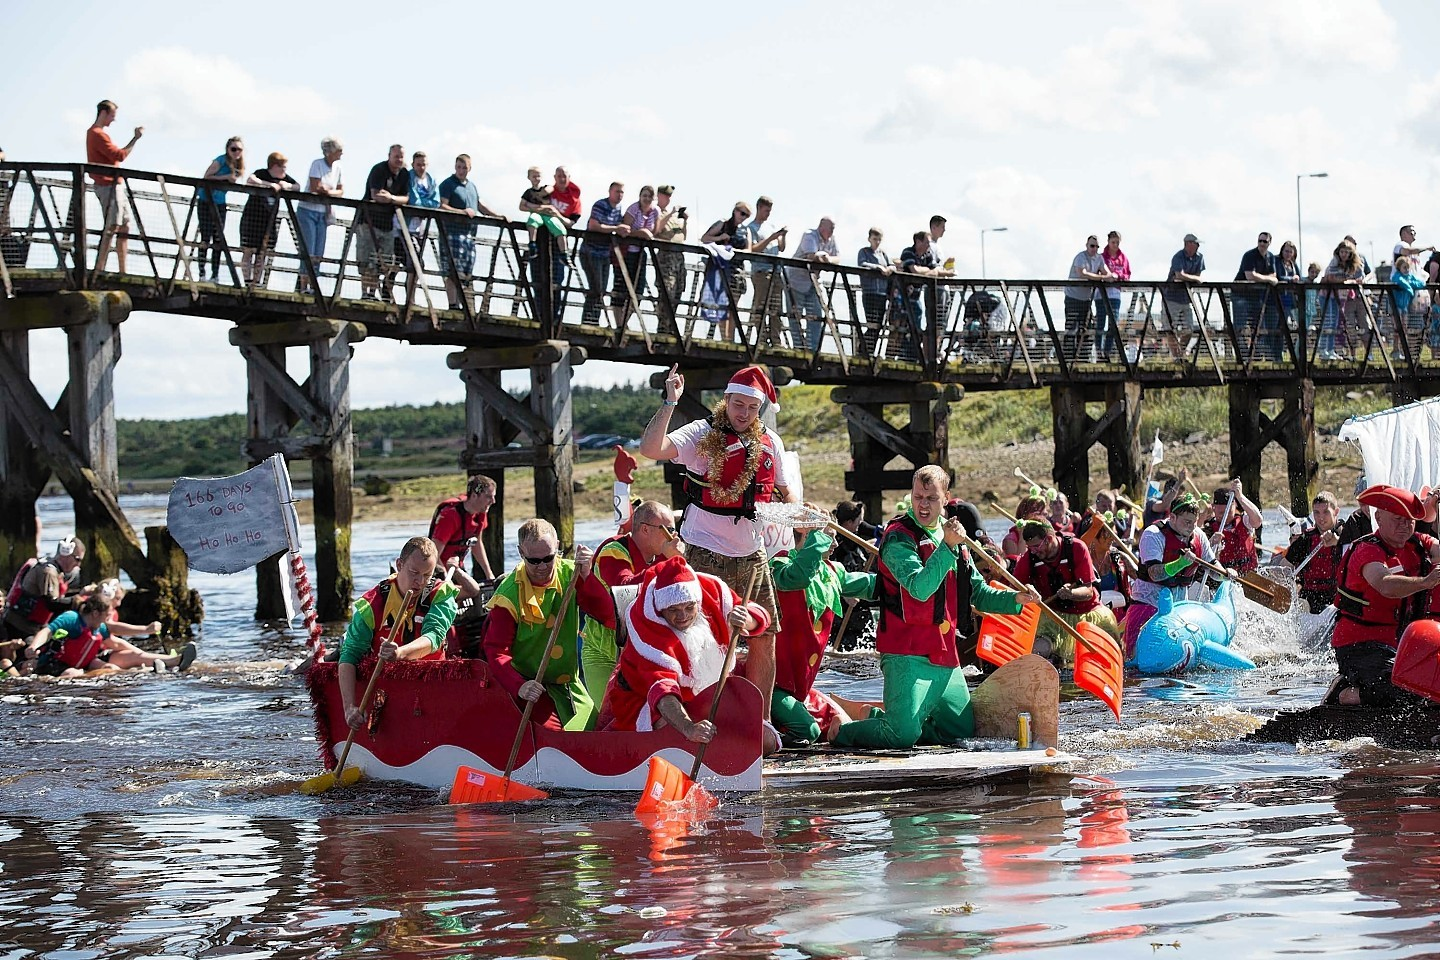 Lossiemouth Raft Race in action